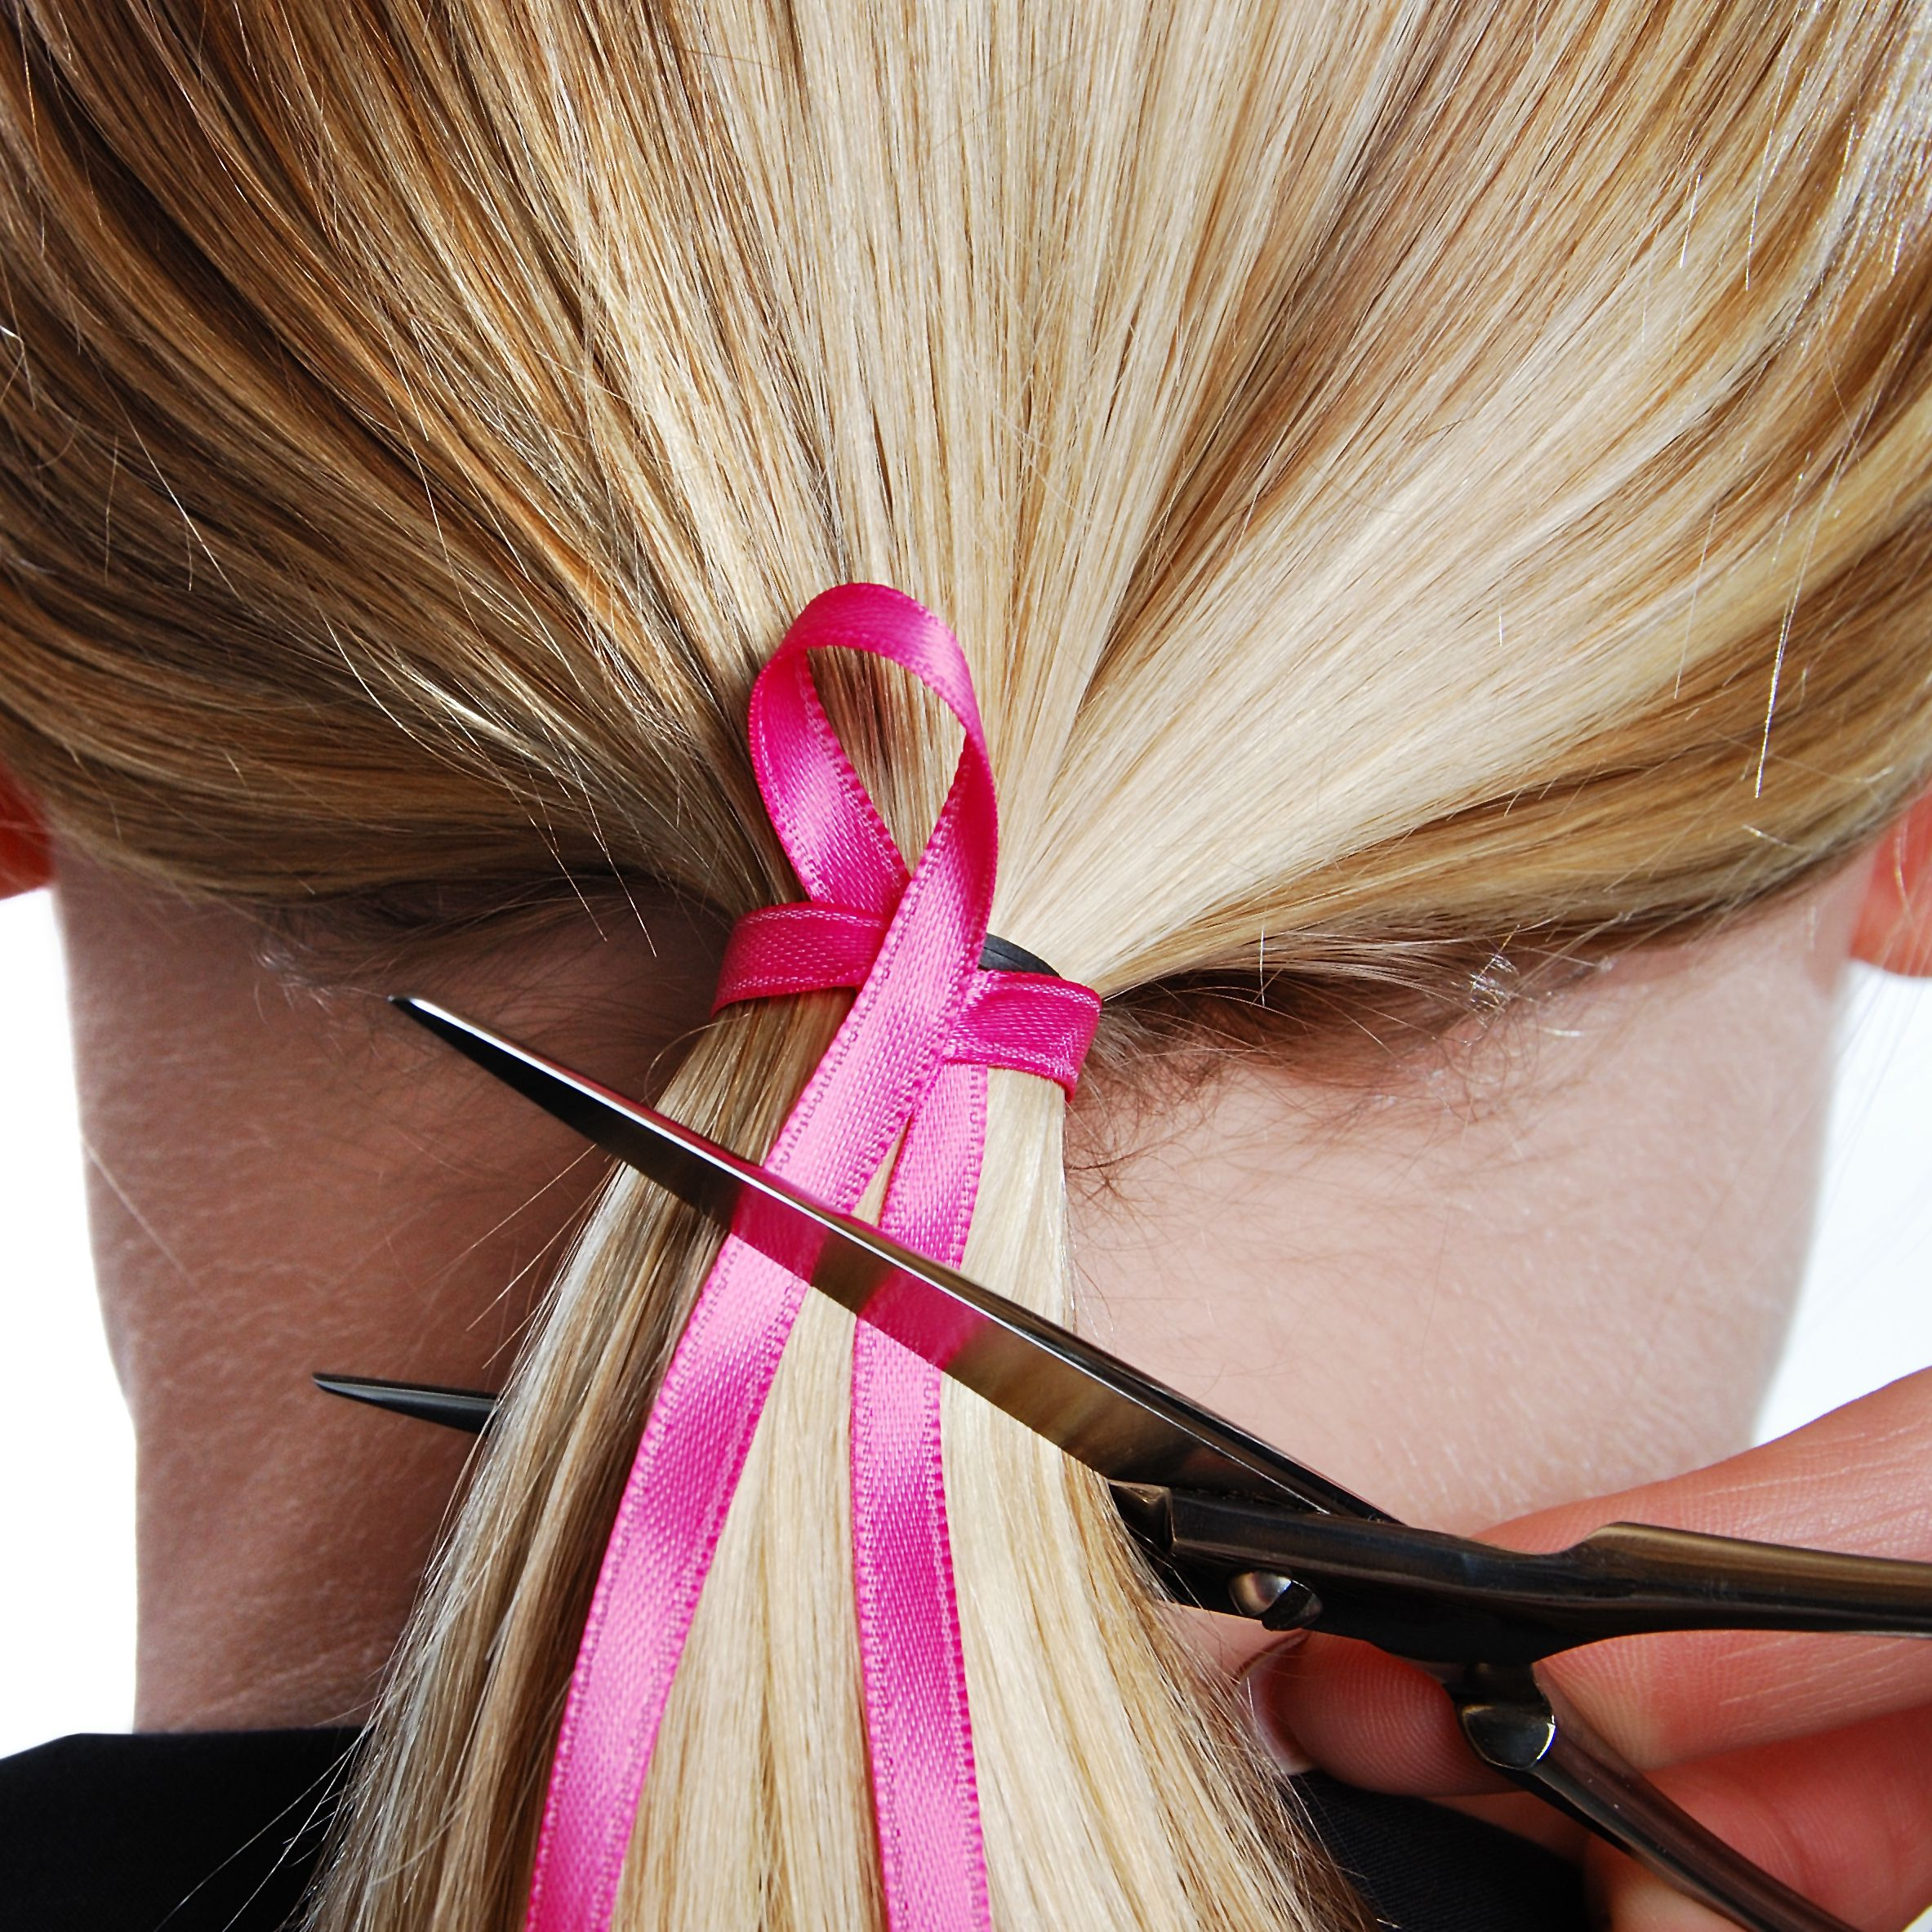 Best Places to Make a Hair Donation and How to Do It